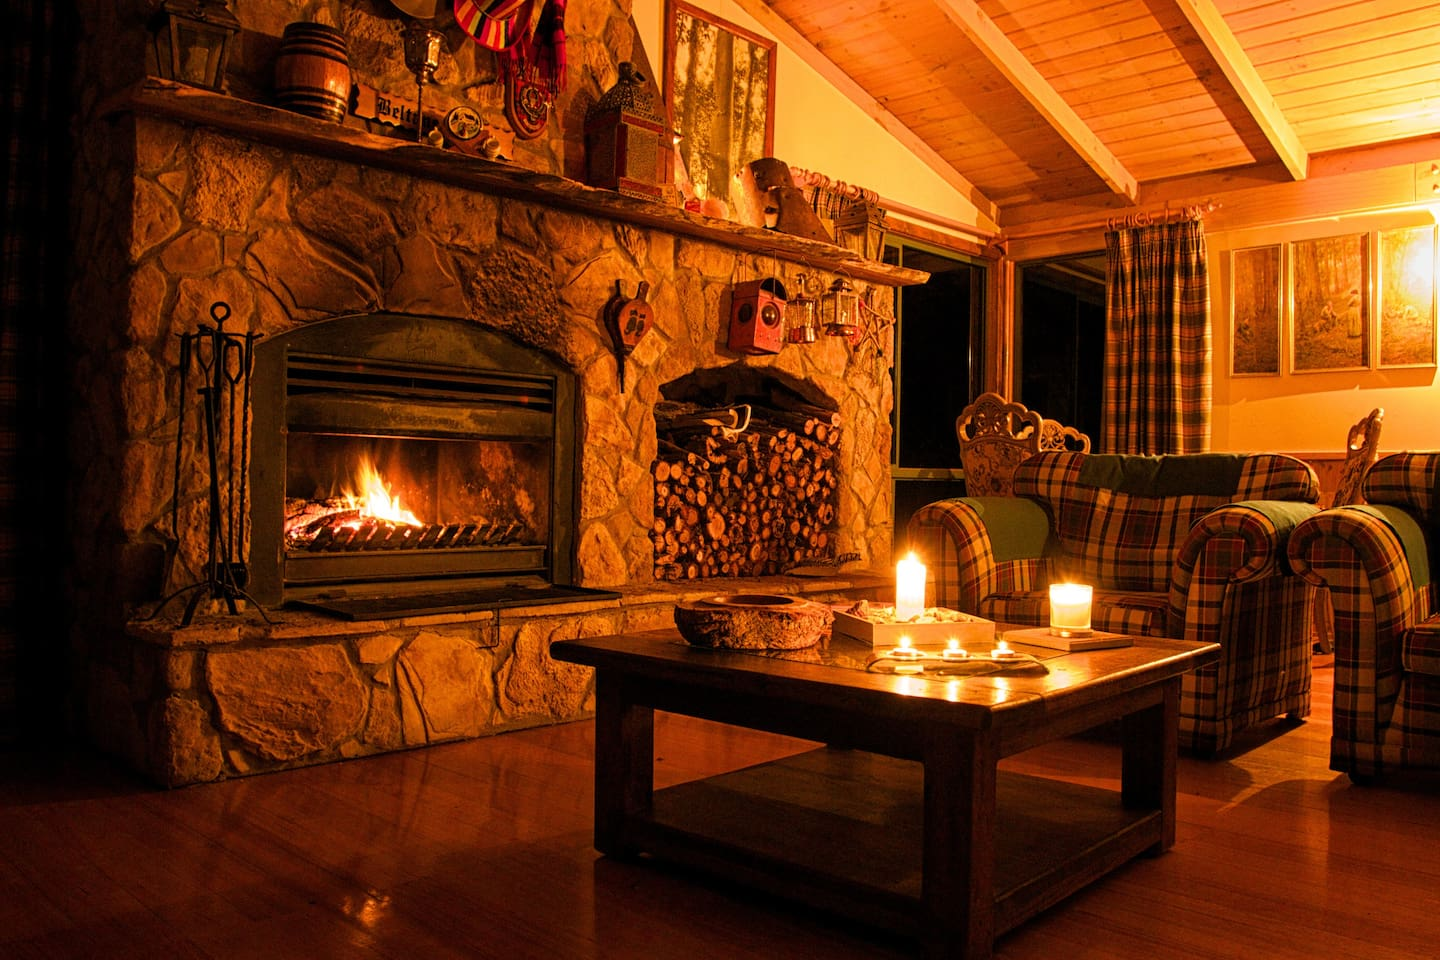 Romantic evenings by a crackling fire